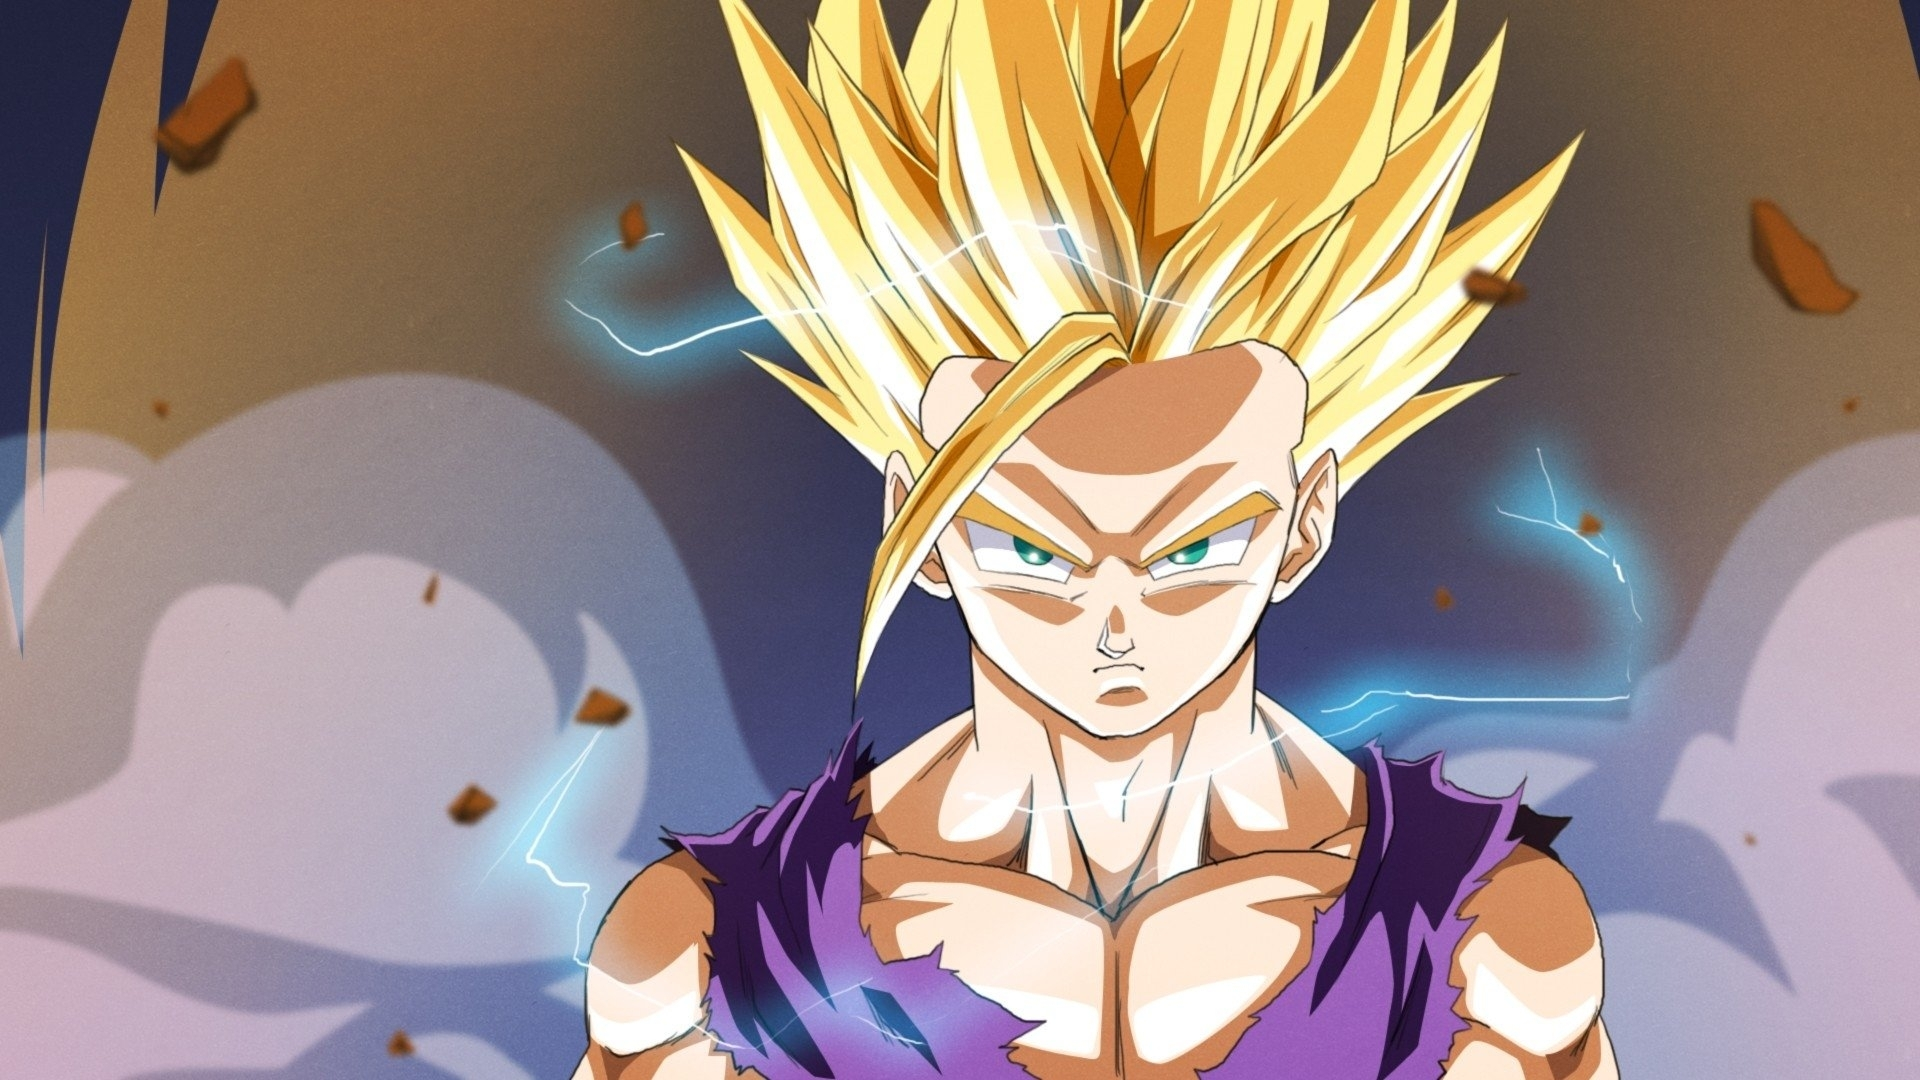 621 dragon ball z hd wallpapers | background images - wallpaper abyss